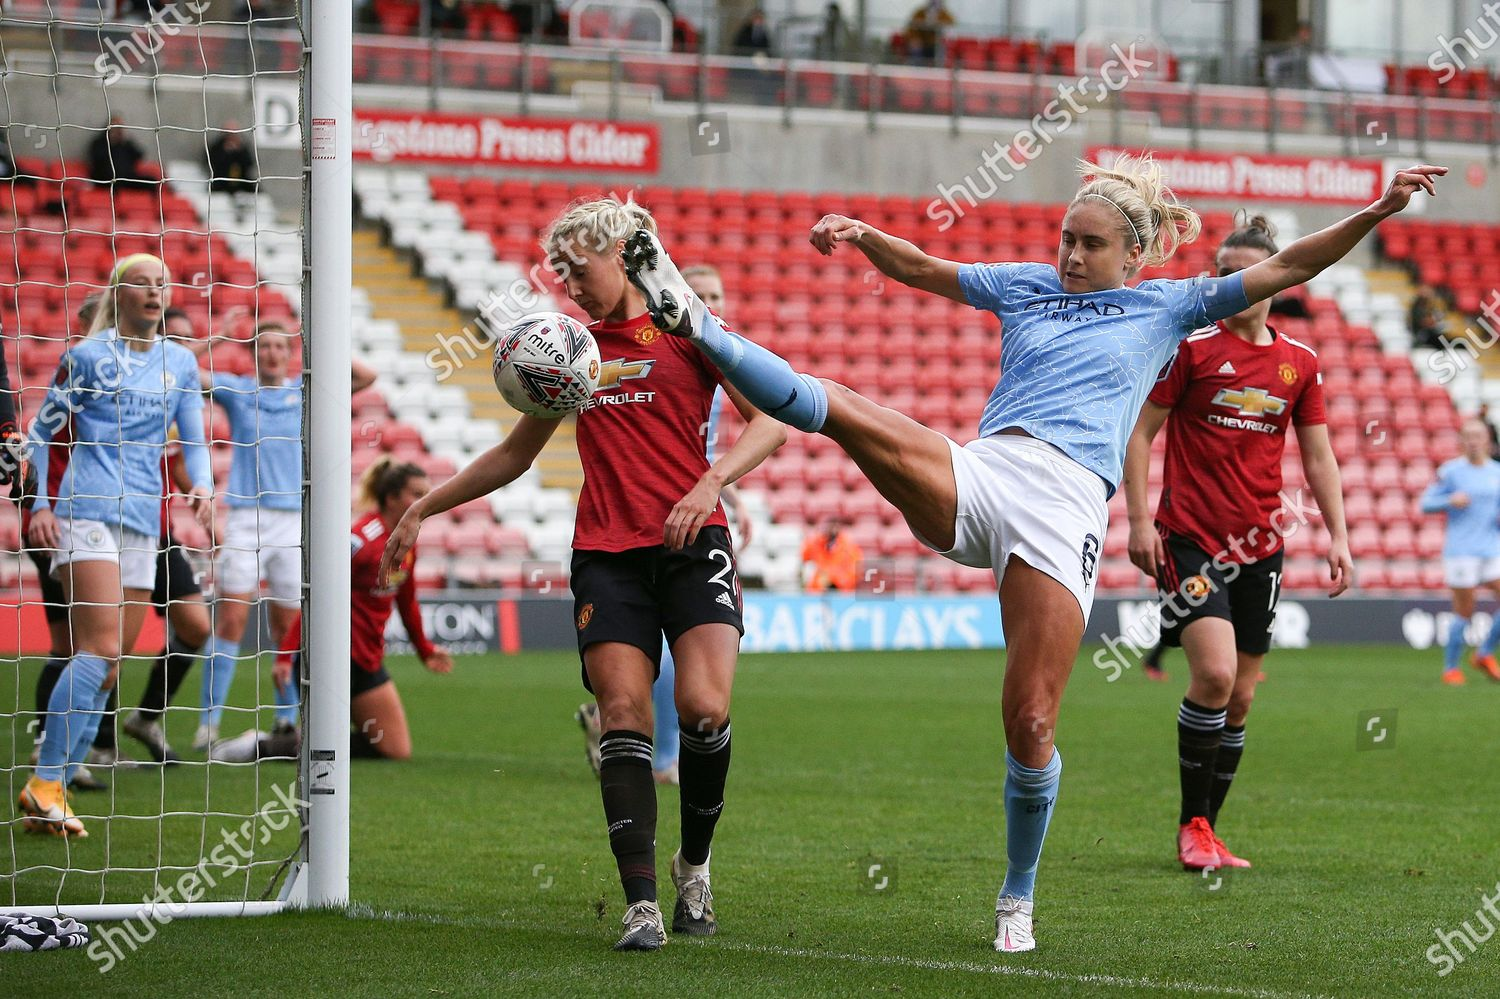 Stock photo of Manchester United Women v Manchester City Women, FA Women's Super League - 14 Nov 2020